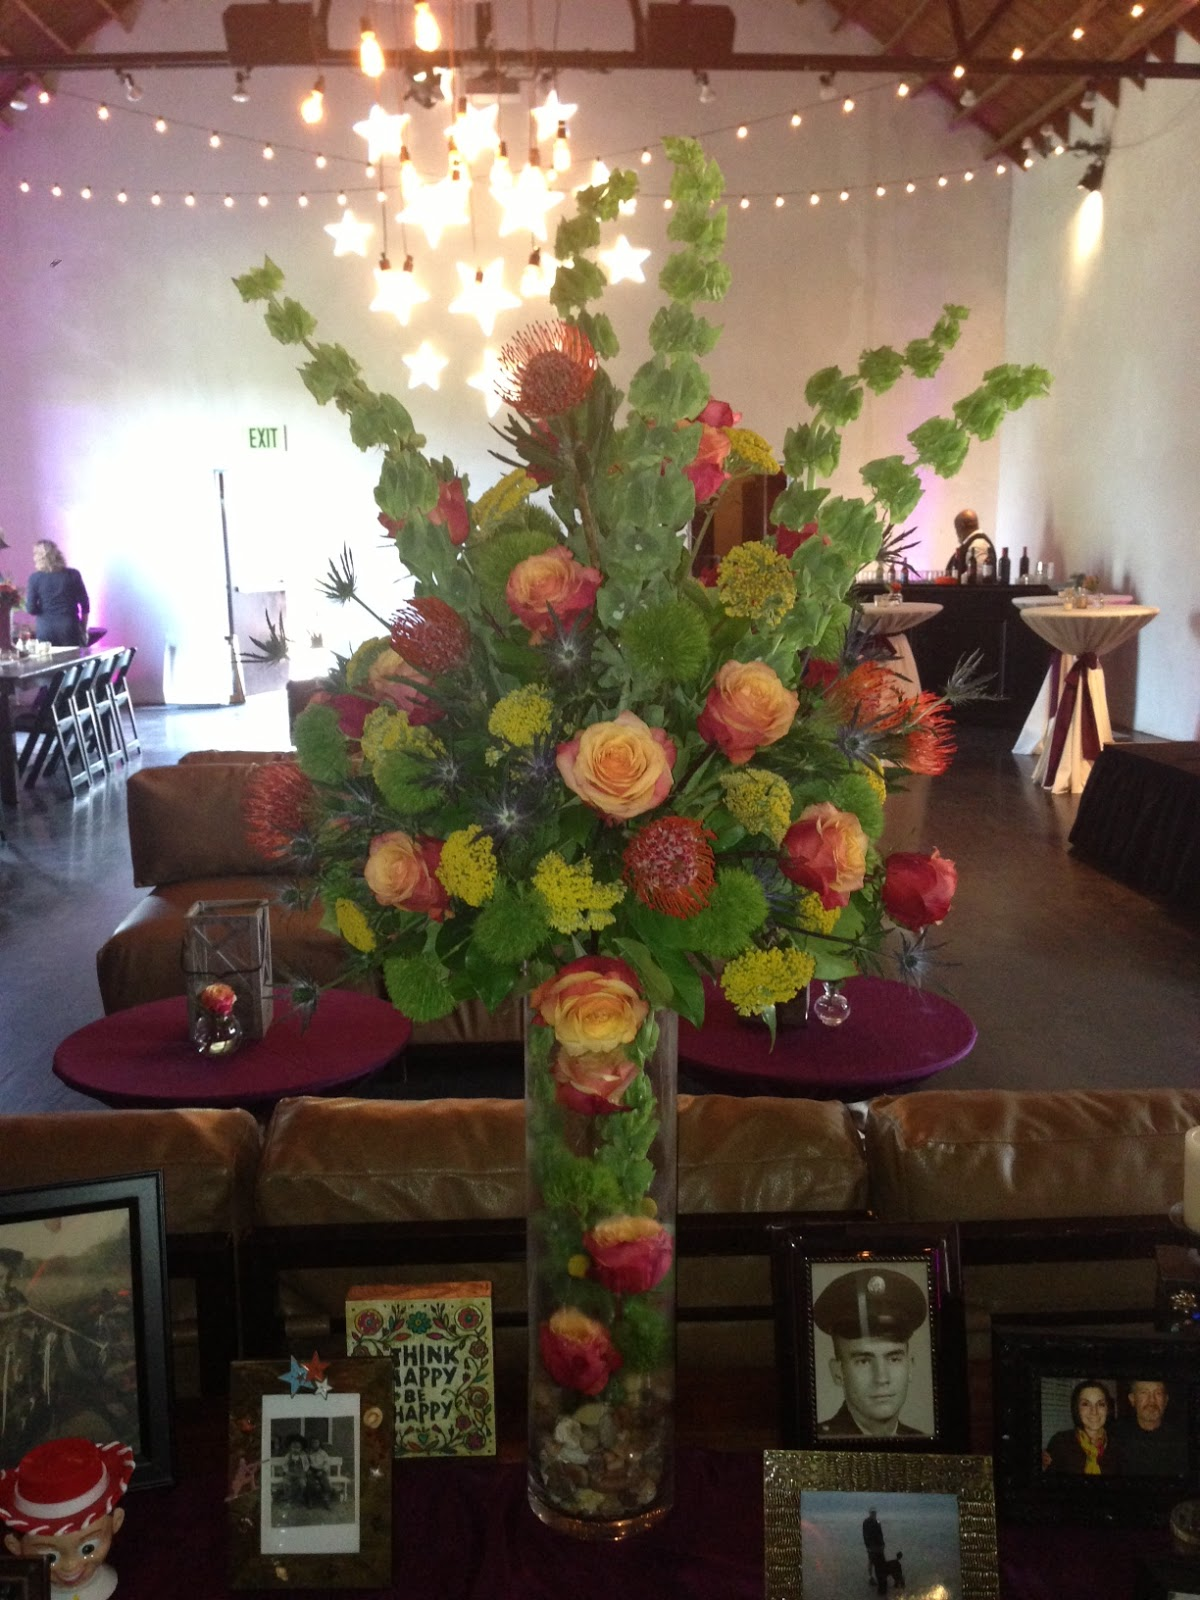 Table Decoration Ideas For Retirement Party photos of golf table centerpieces golf themed table centerpieces for a retirement party my Green Ball Dianthus Pincushion Protea For The Cactus Element And Yarrow In The Large Entryway Arrangement And Billy Balls For The Table Centerpieces